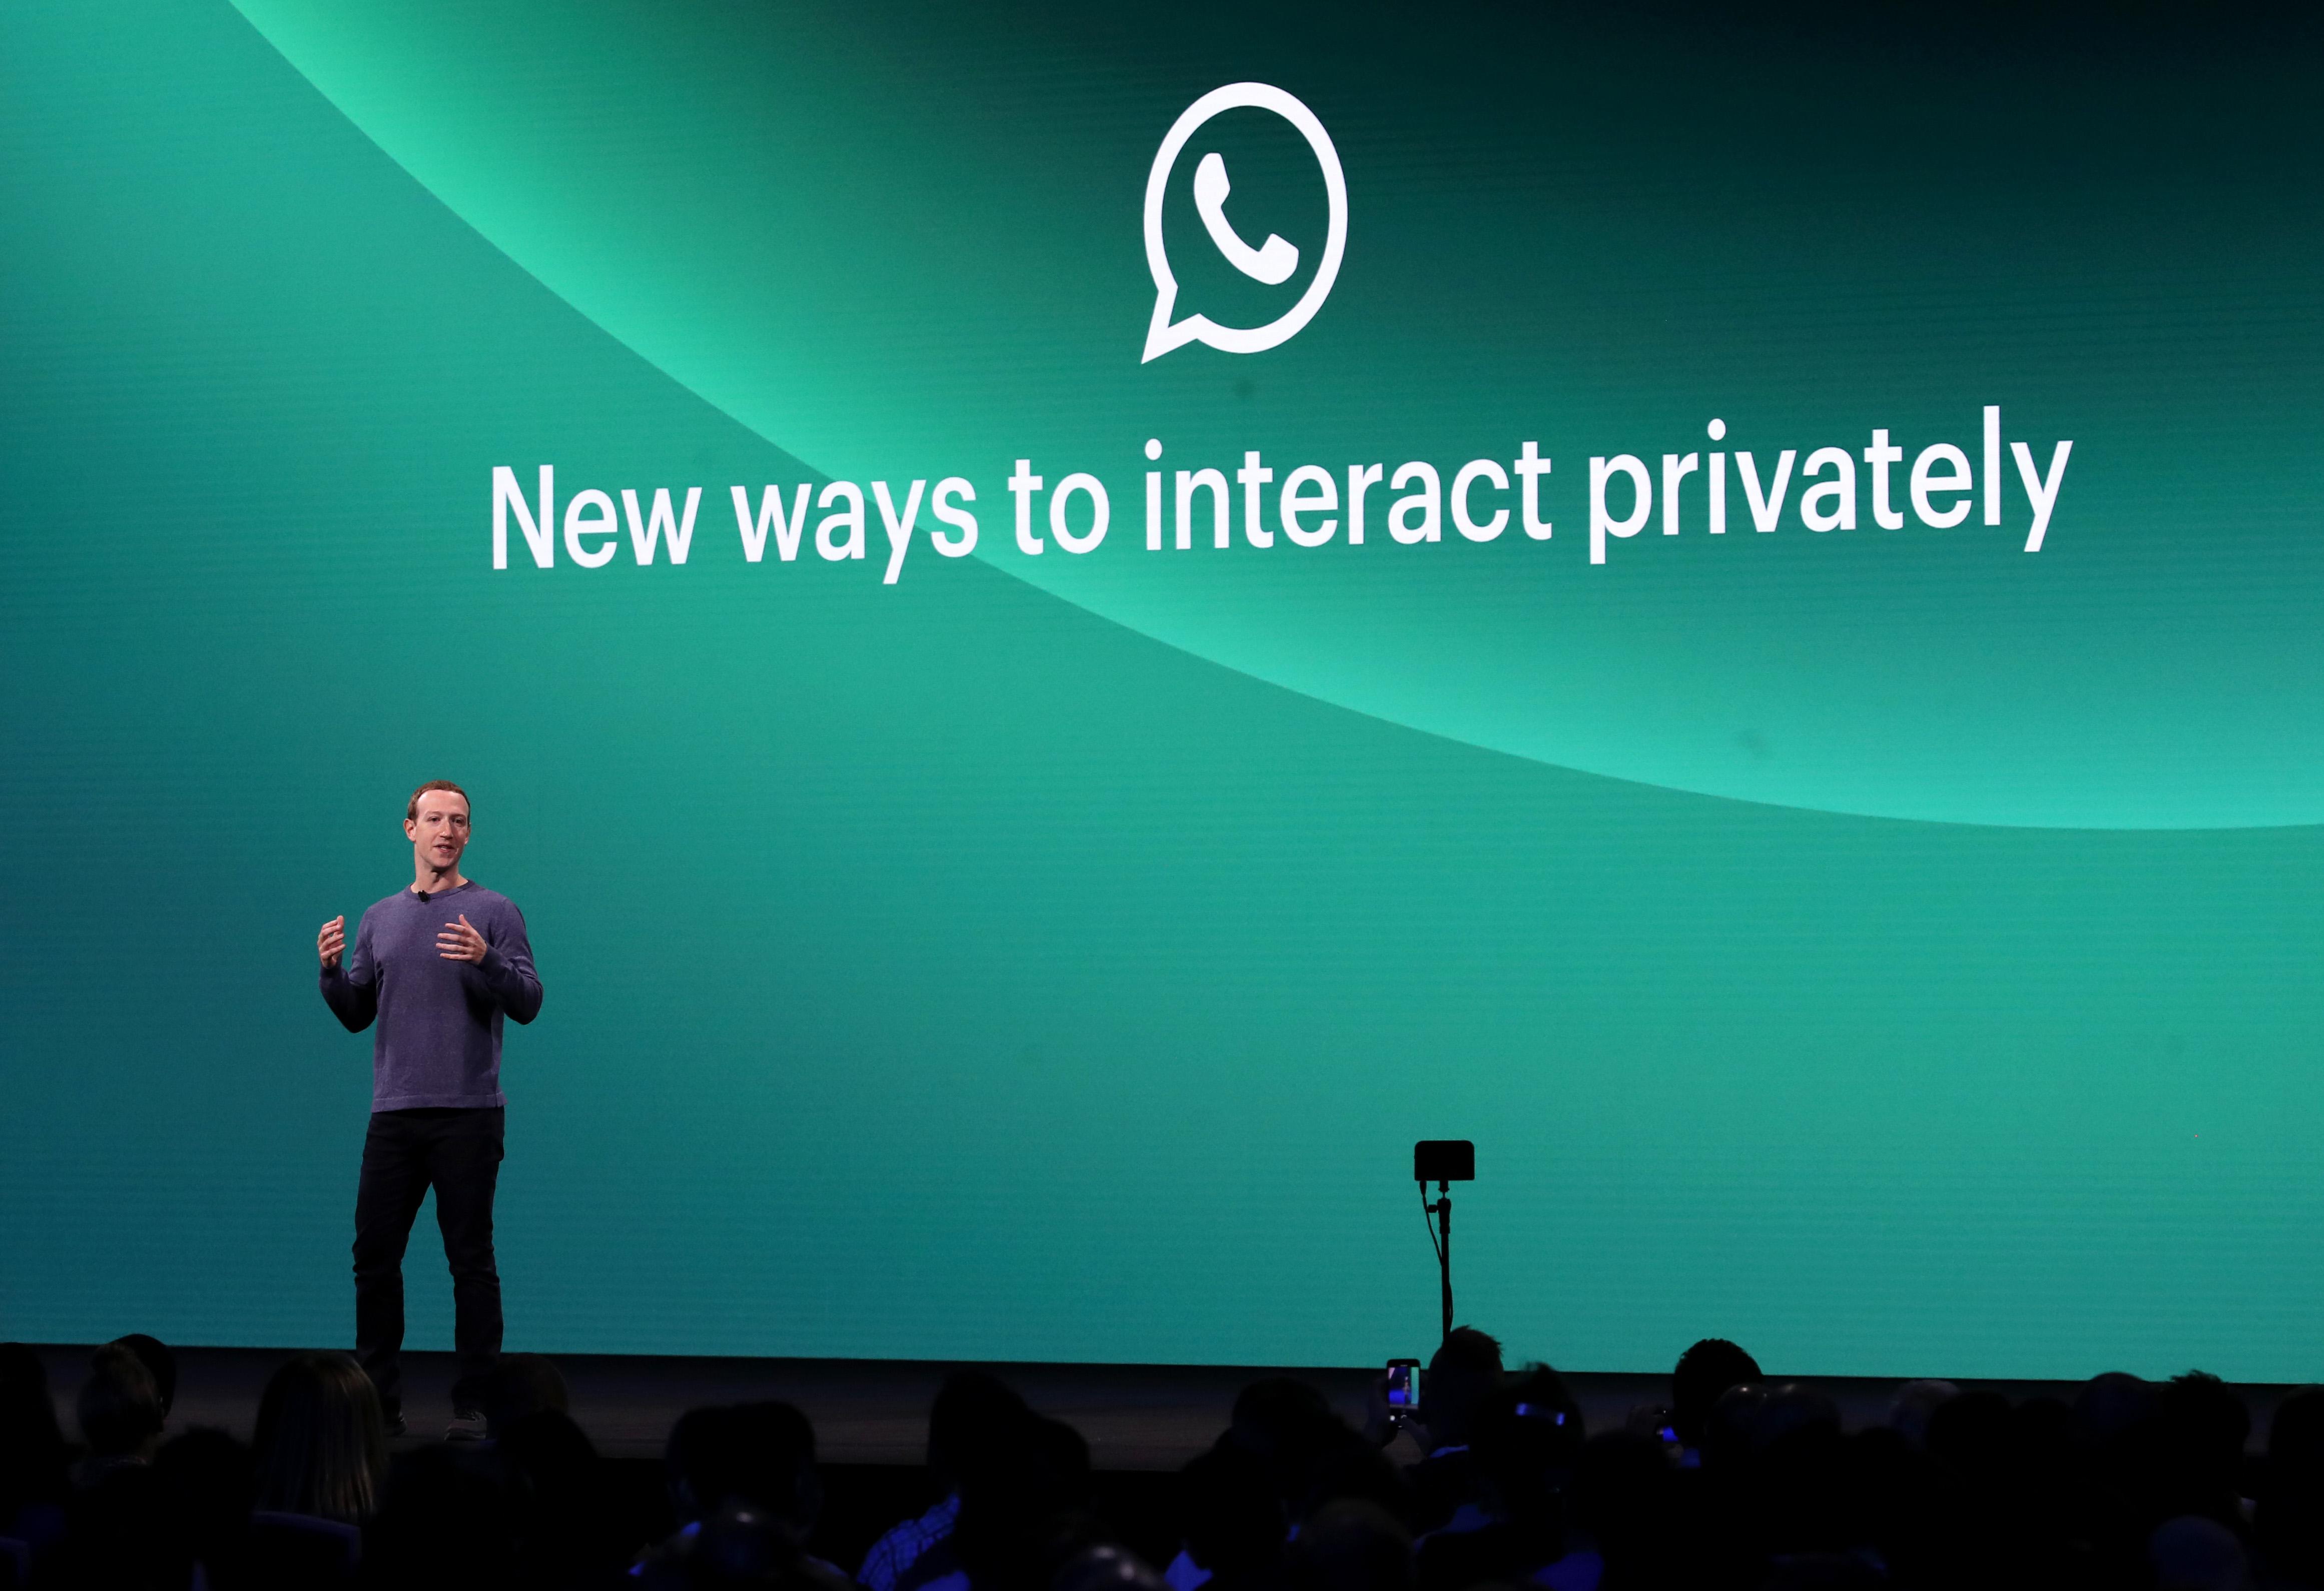 """Facebook CEO Mark Zuckerberg at Facebook's F8 developer conference standing onstage in front of a screen reading, """"New ways to interact privately."""""""